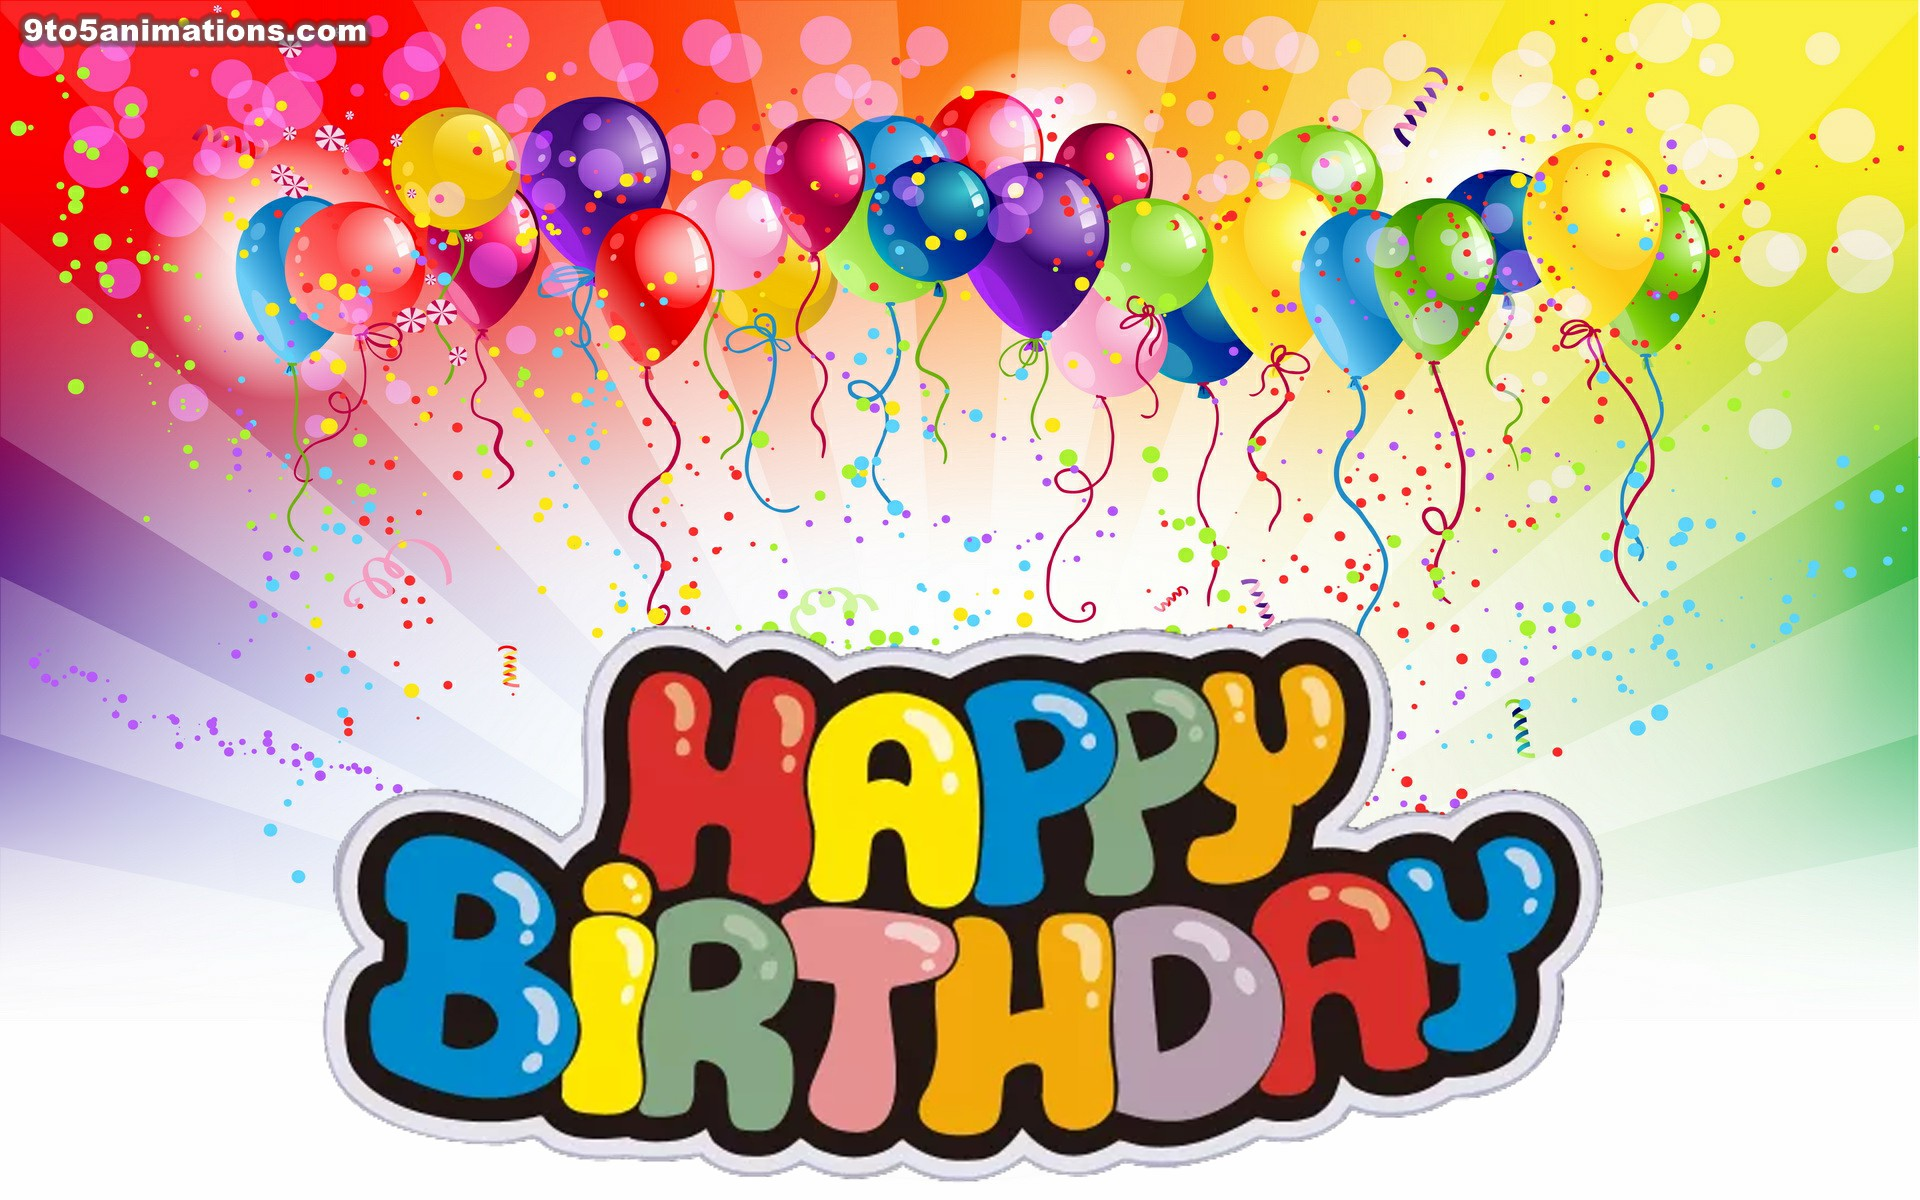 happy birthday hd images 2018 ; happy-birthday-balloons-wishes-wallpapers-images